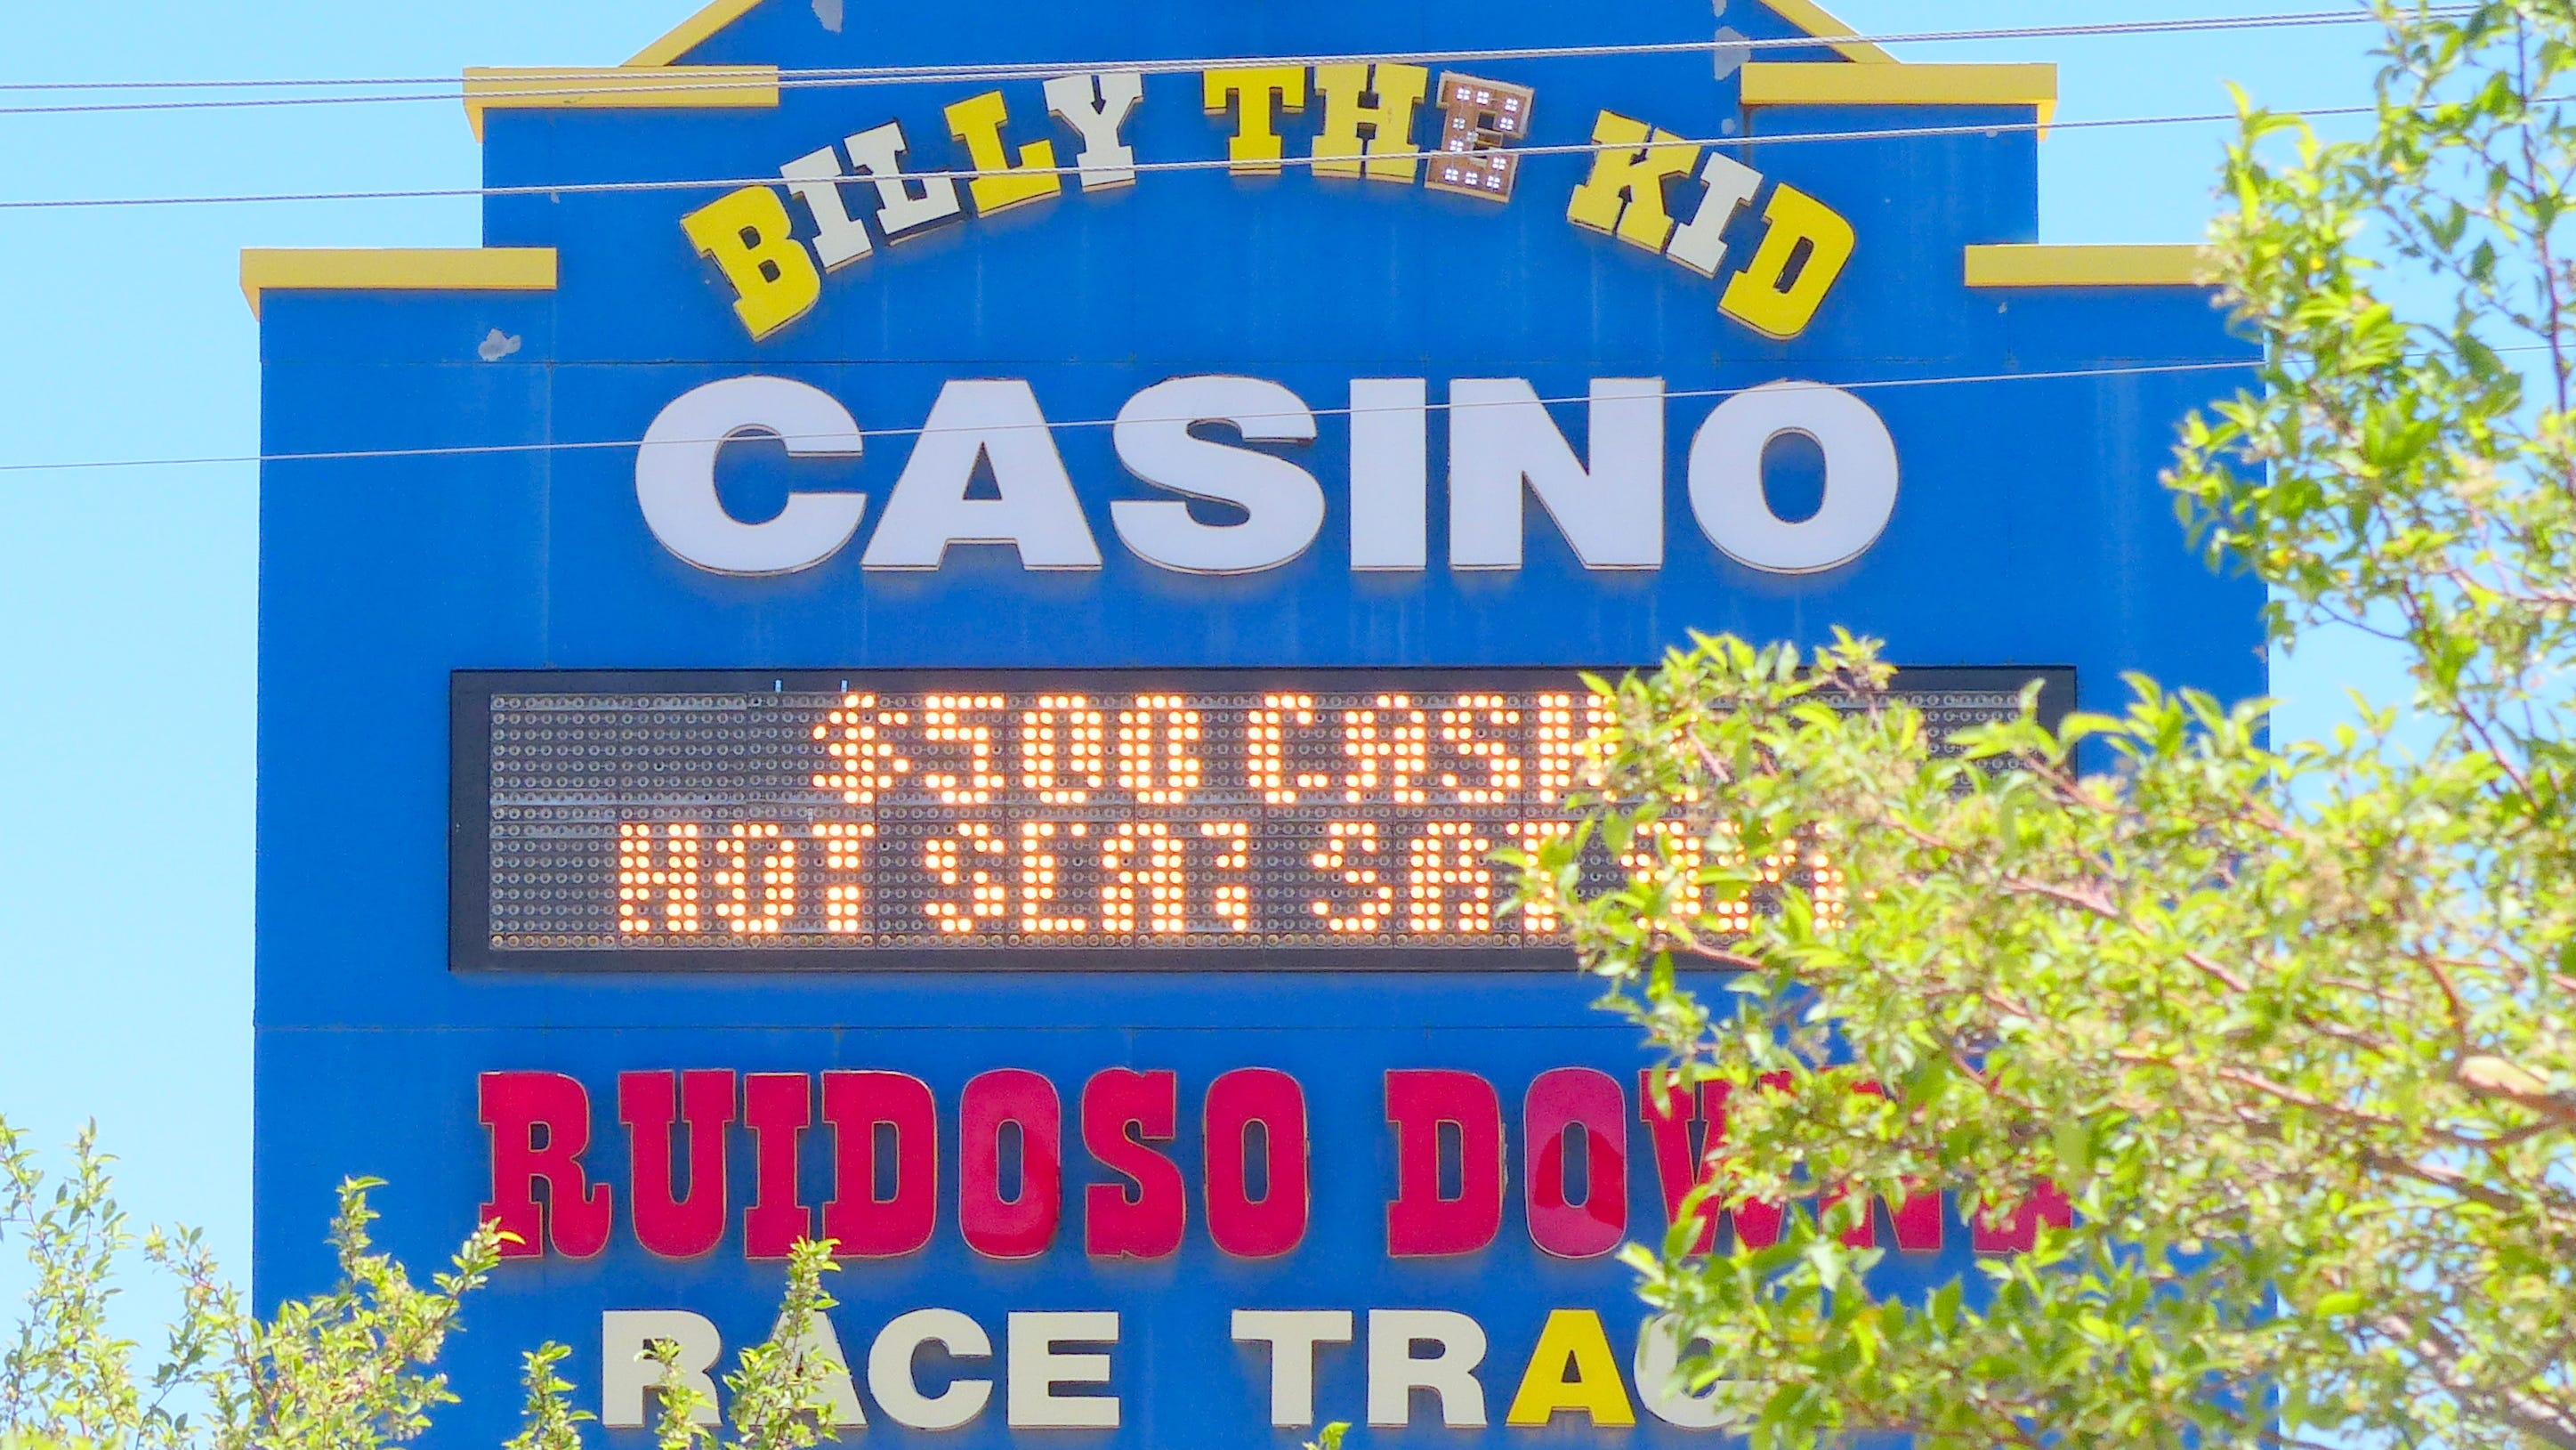 Ruidoso Downs Race Track banned trainer after four horses show signs of distress.